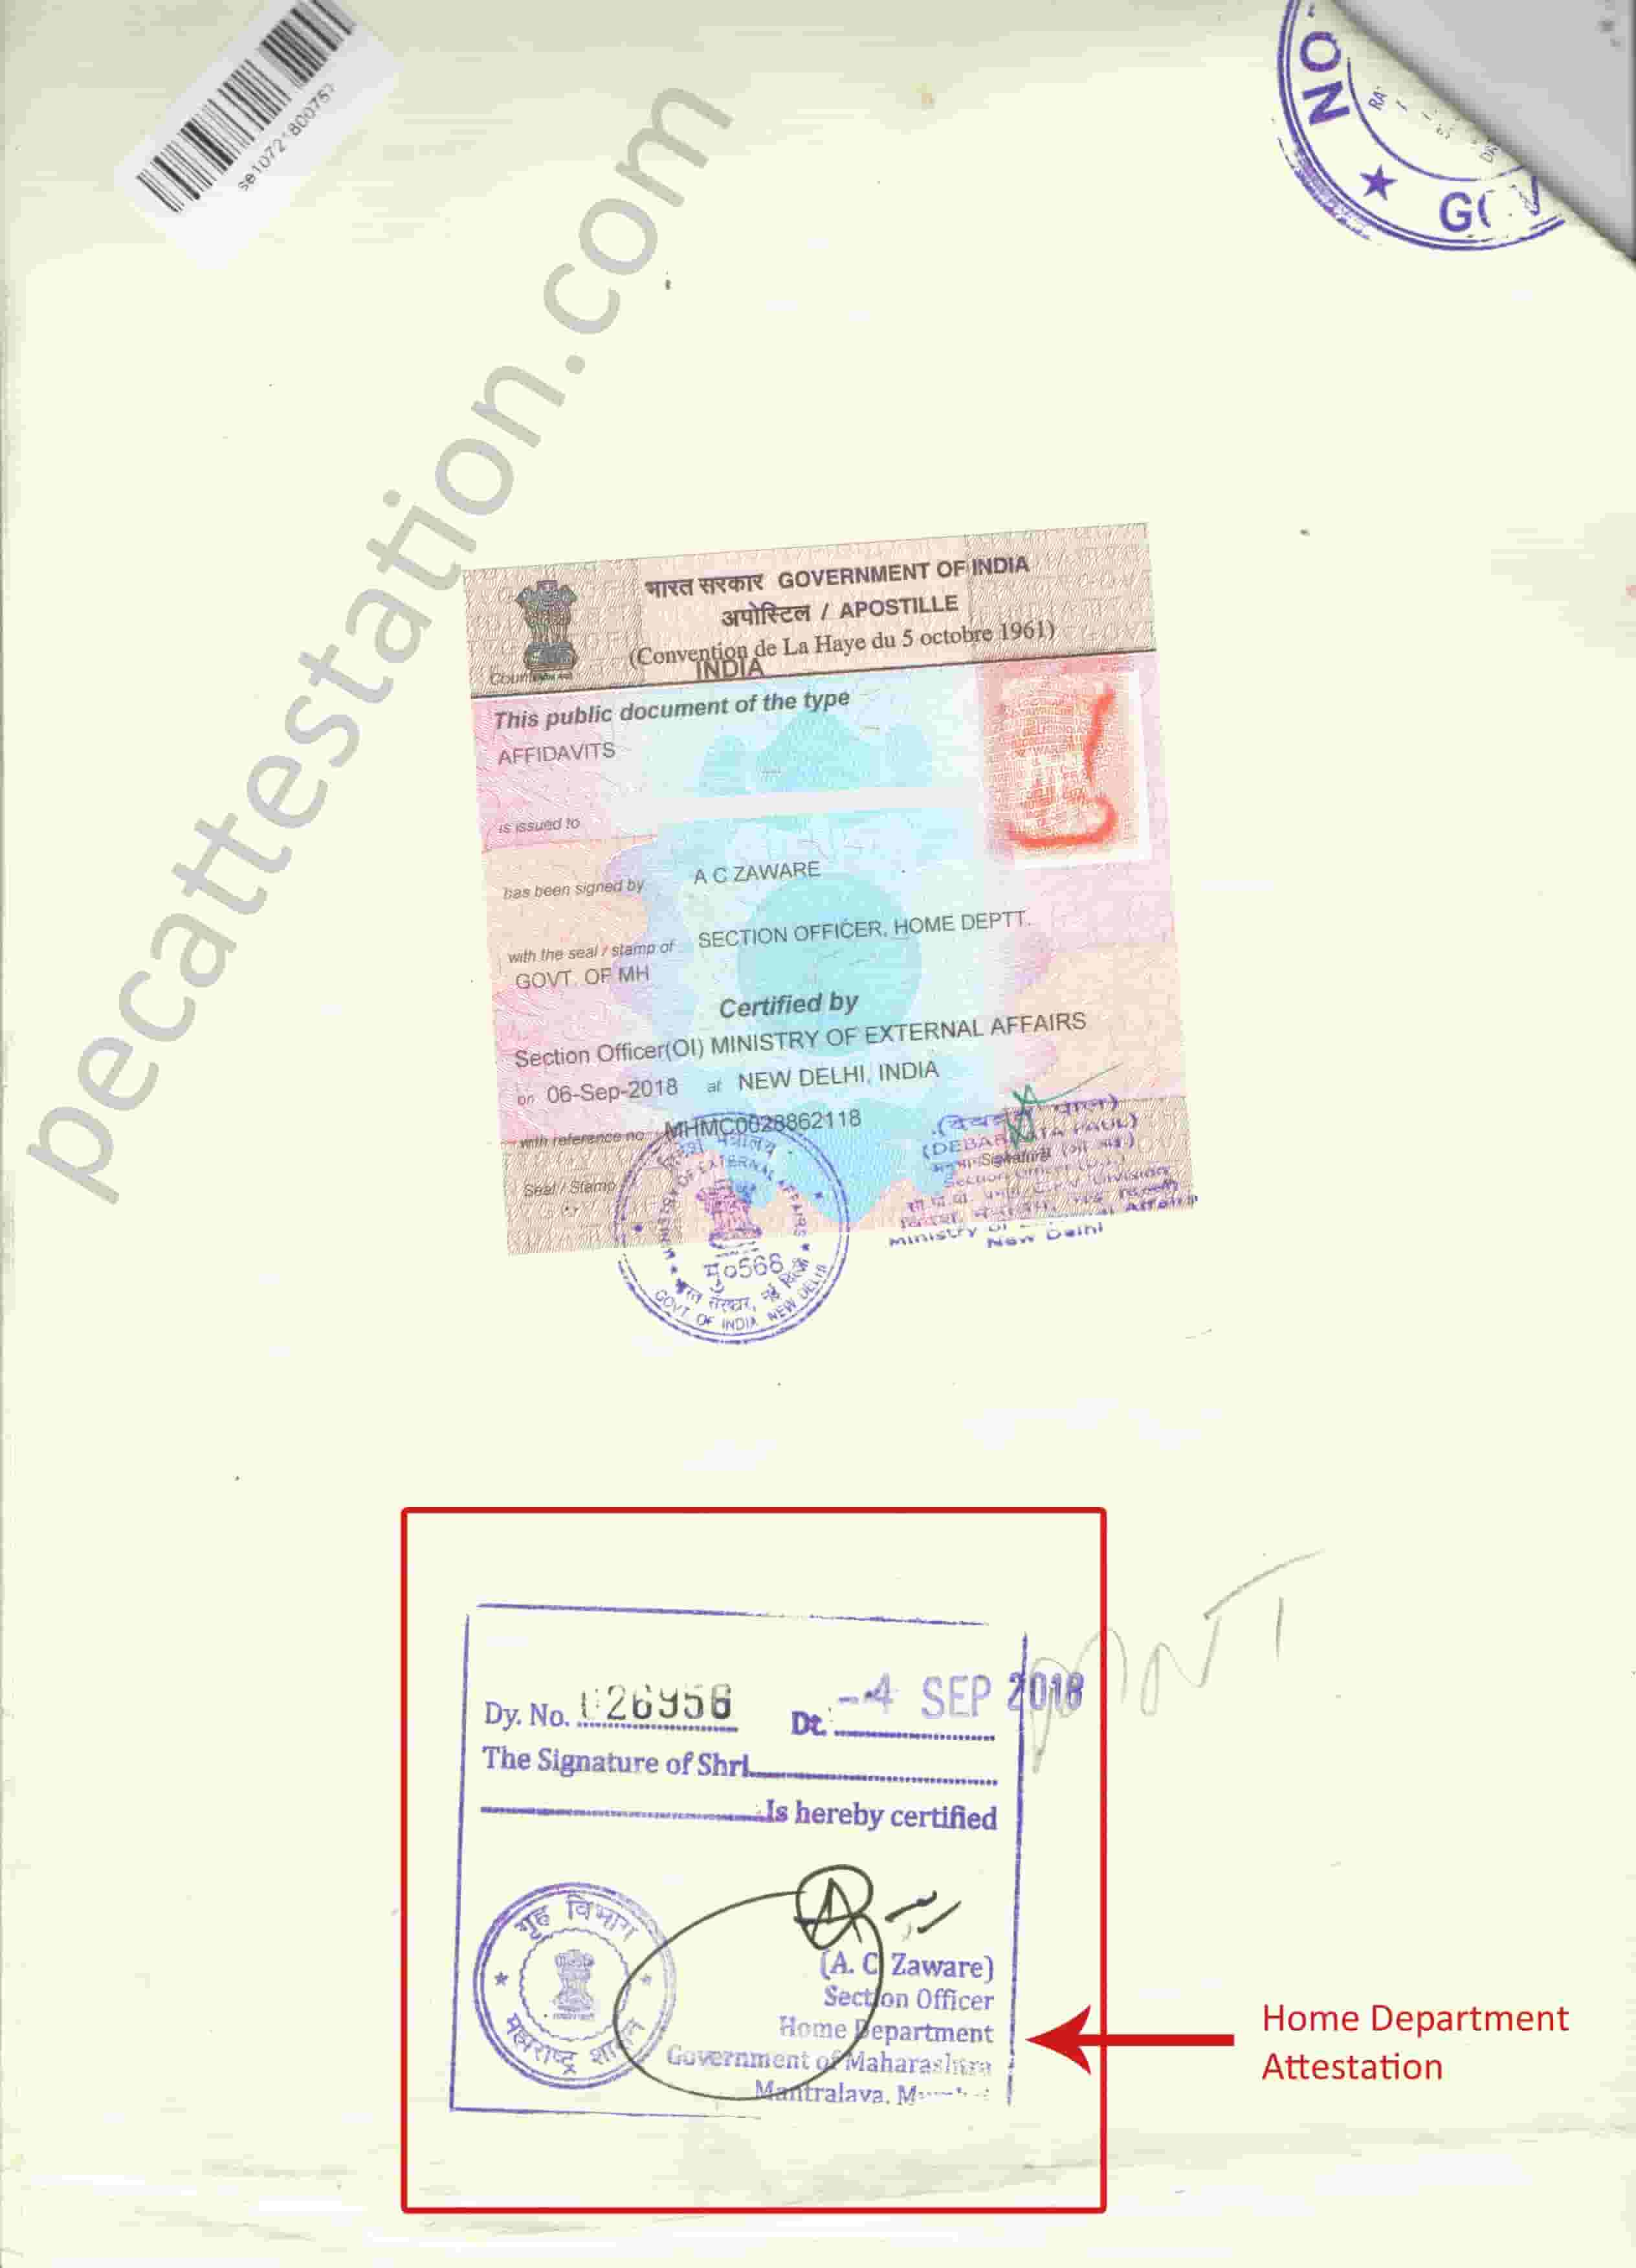 Home Department Attestation for Birth Certificate Affidavit